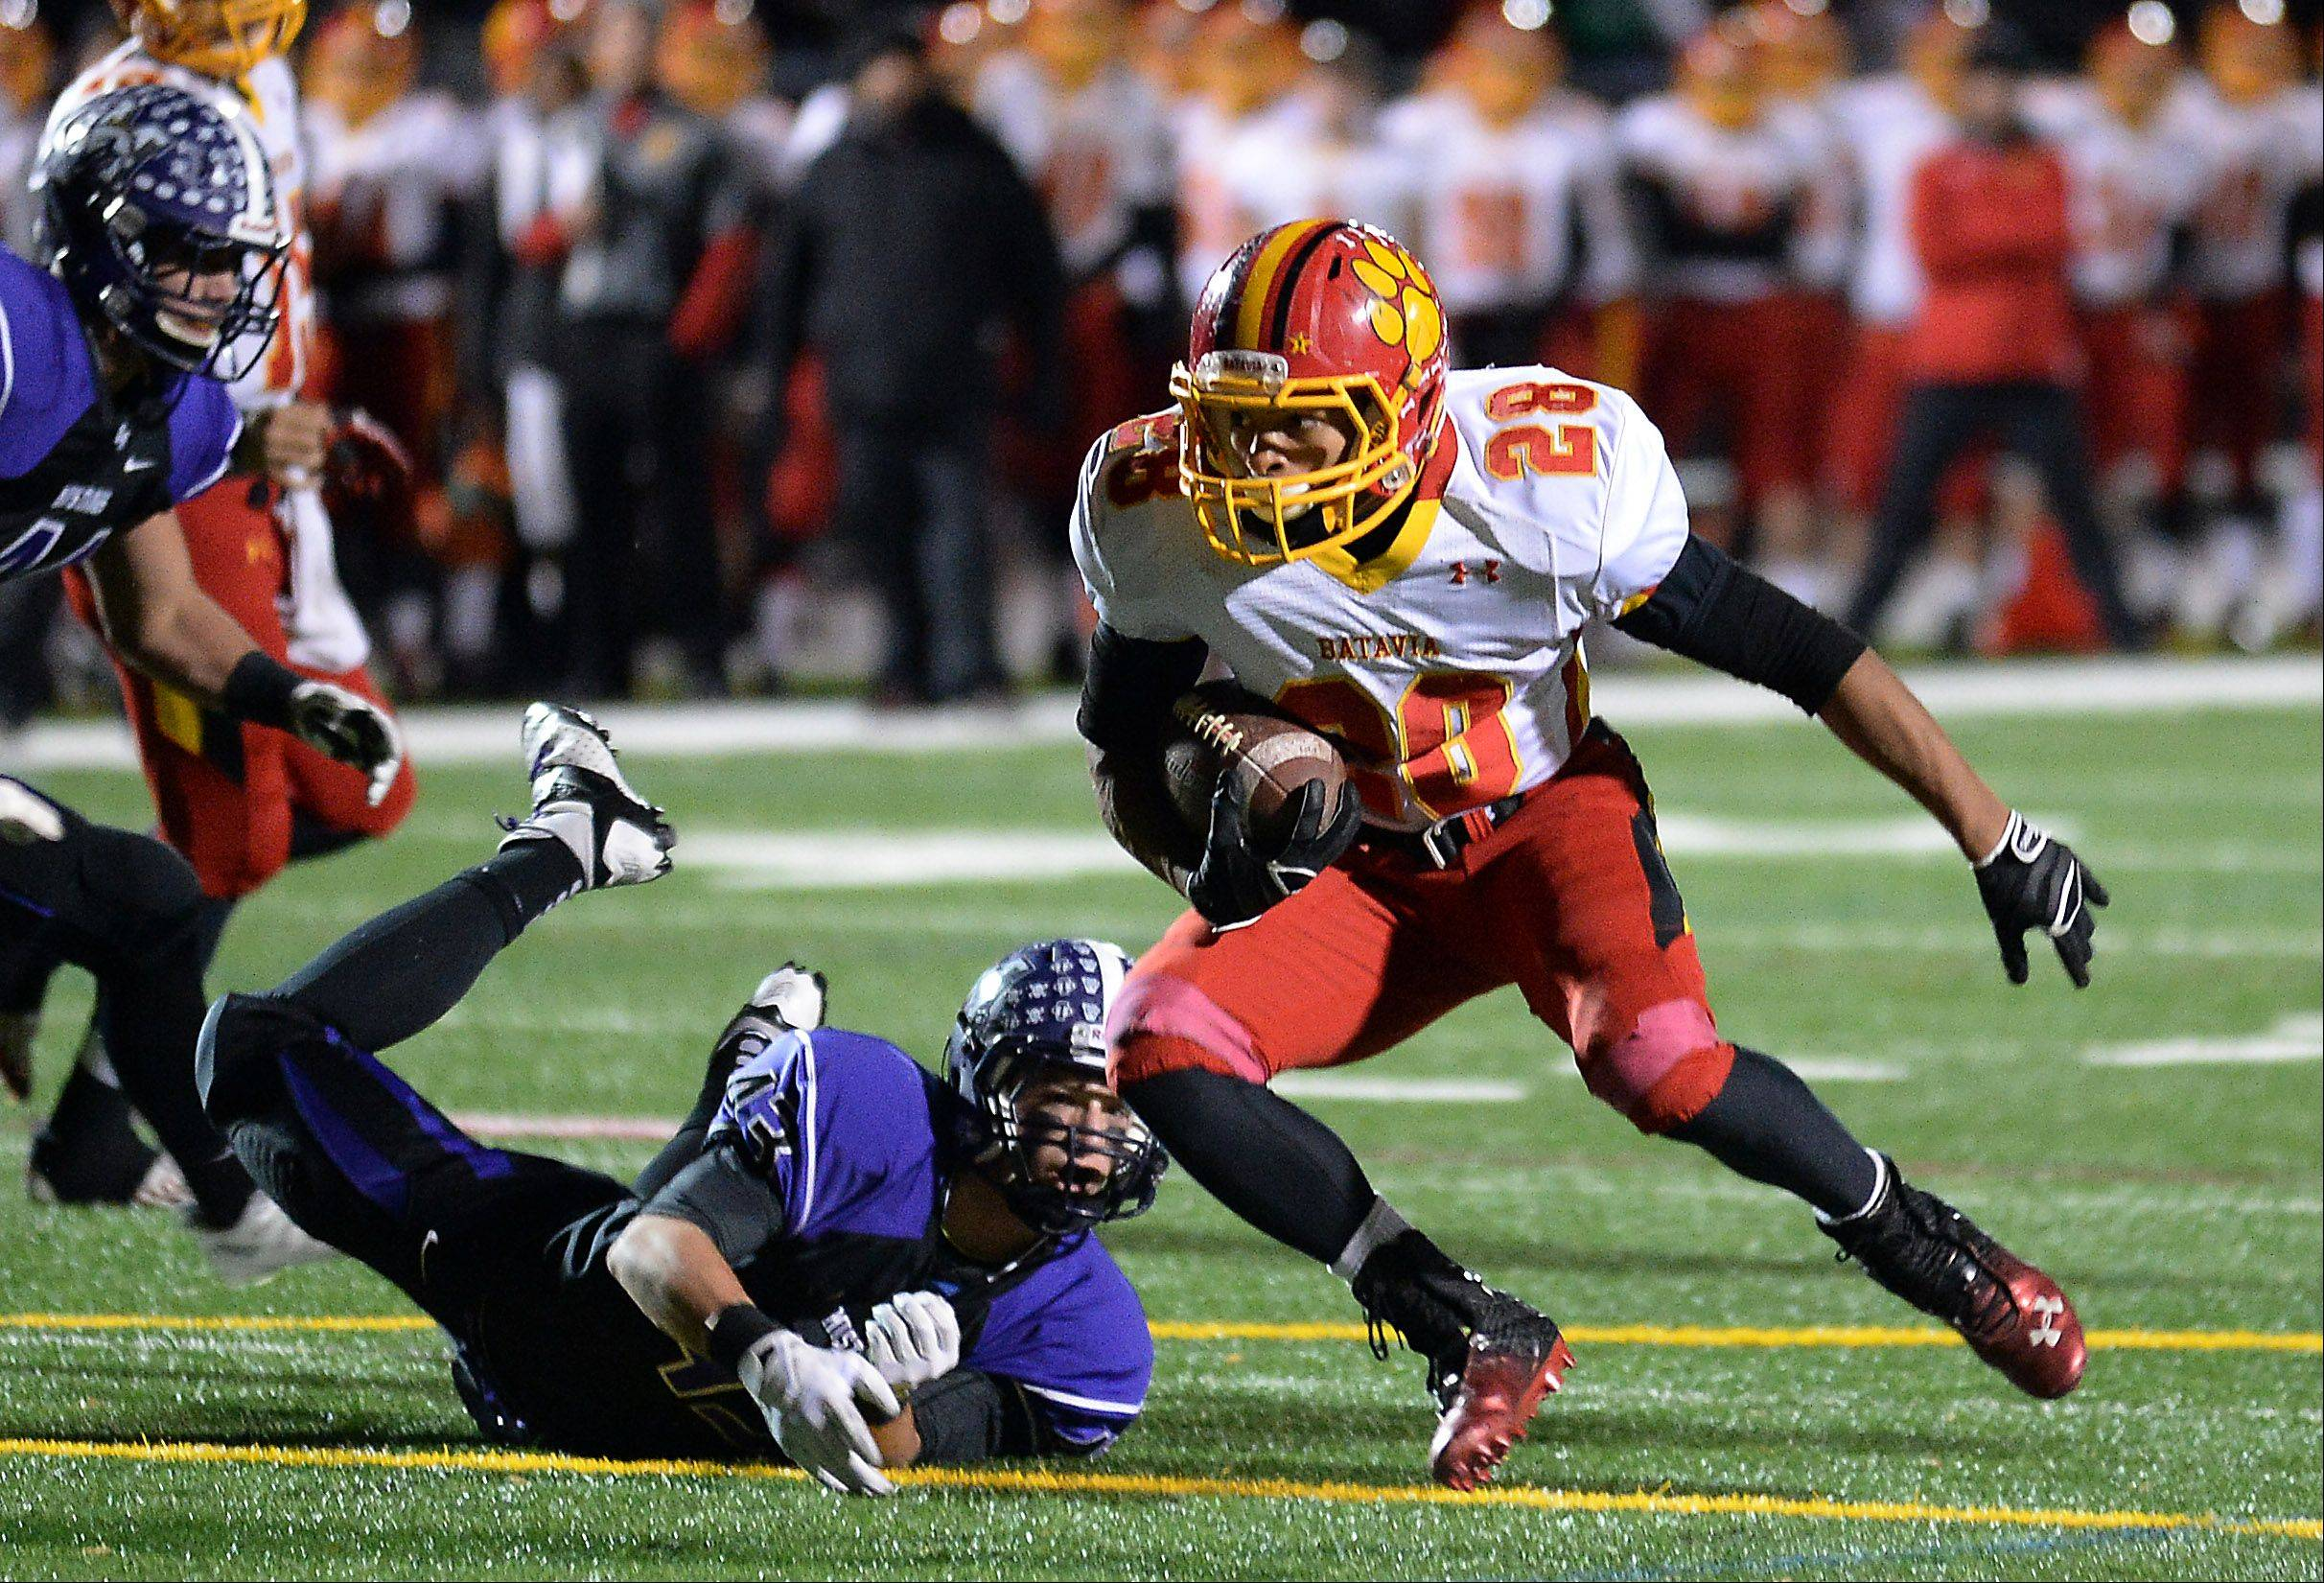 Batavia's Anthony Scaccia eludes Rolling Meadows' Peyton Dezonna for a third-quarter touchdown in Class 6A playoff action at Rolling Meadows on Saturday.